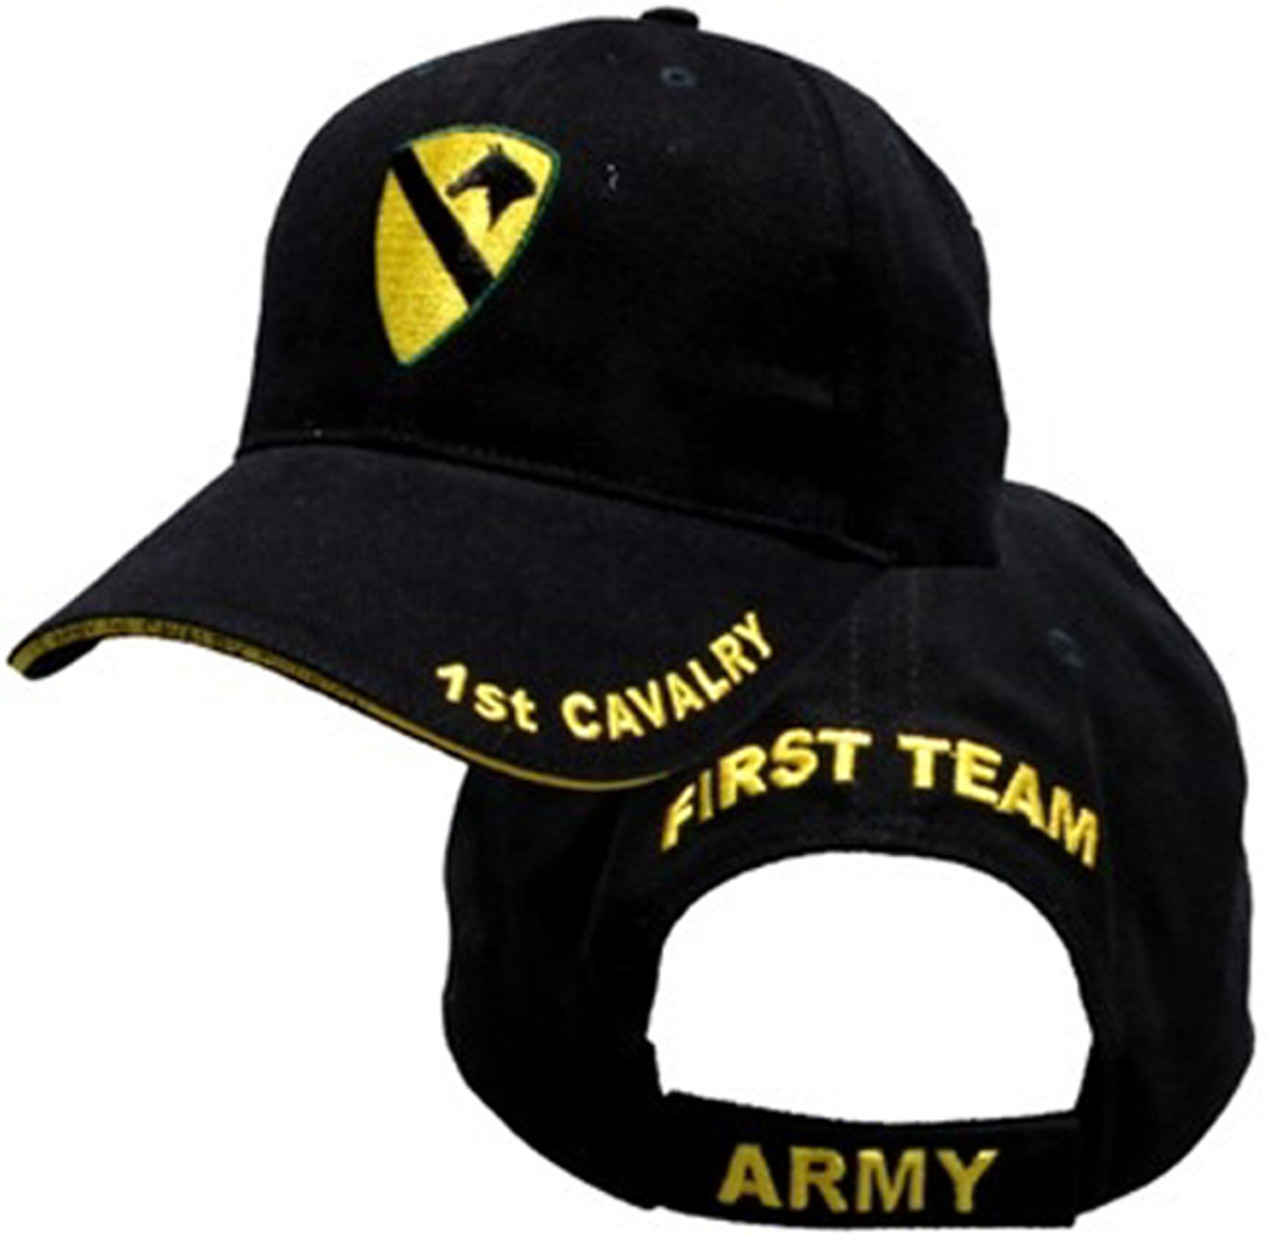 US ARMY 1ST CAVALRY - U.S. Army with 1st Cavalry Logo Baseball Cap Hat 0e29c2cfda5